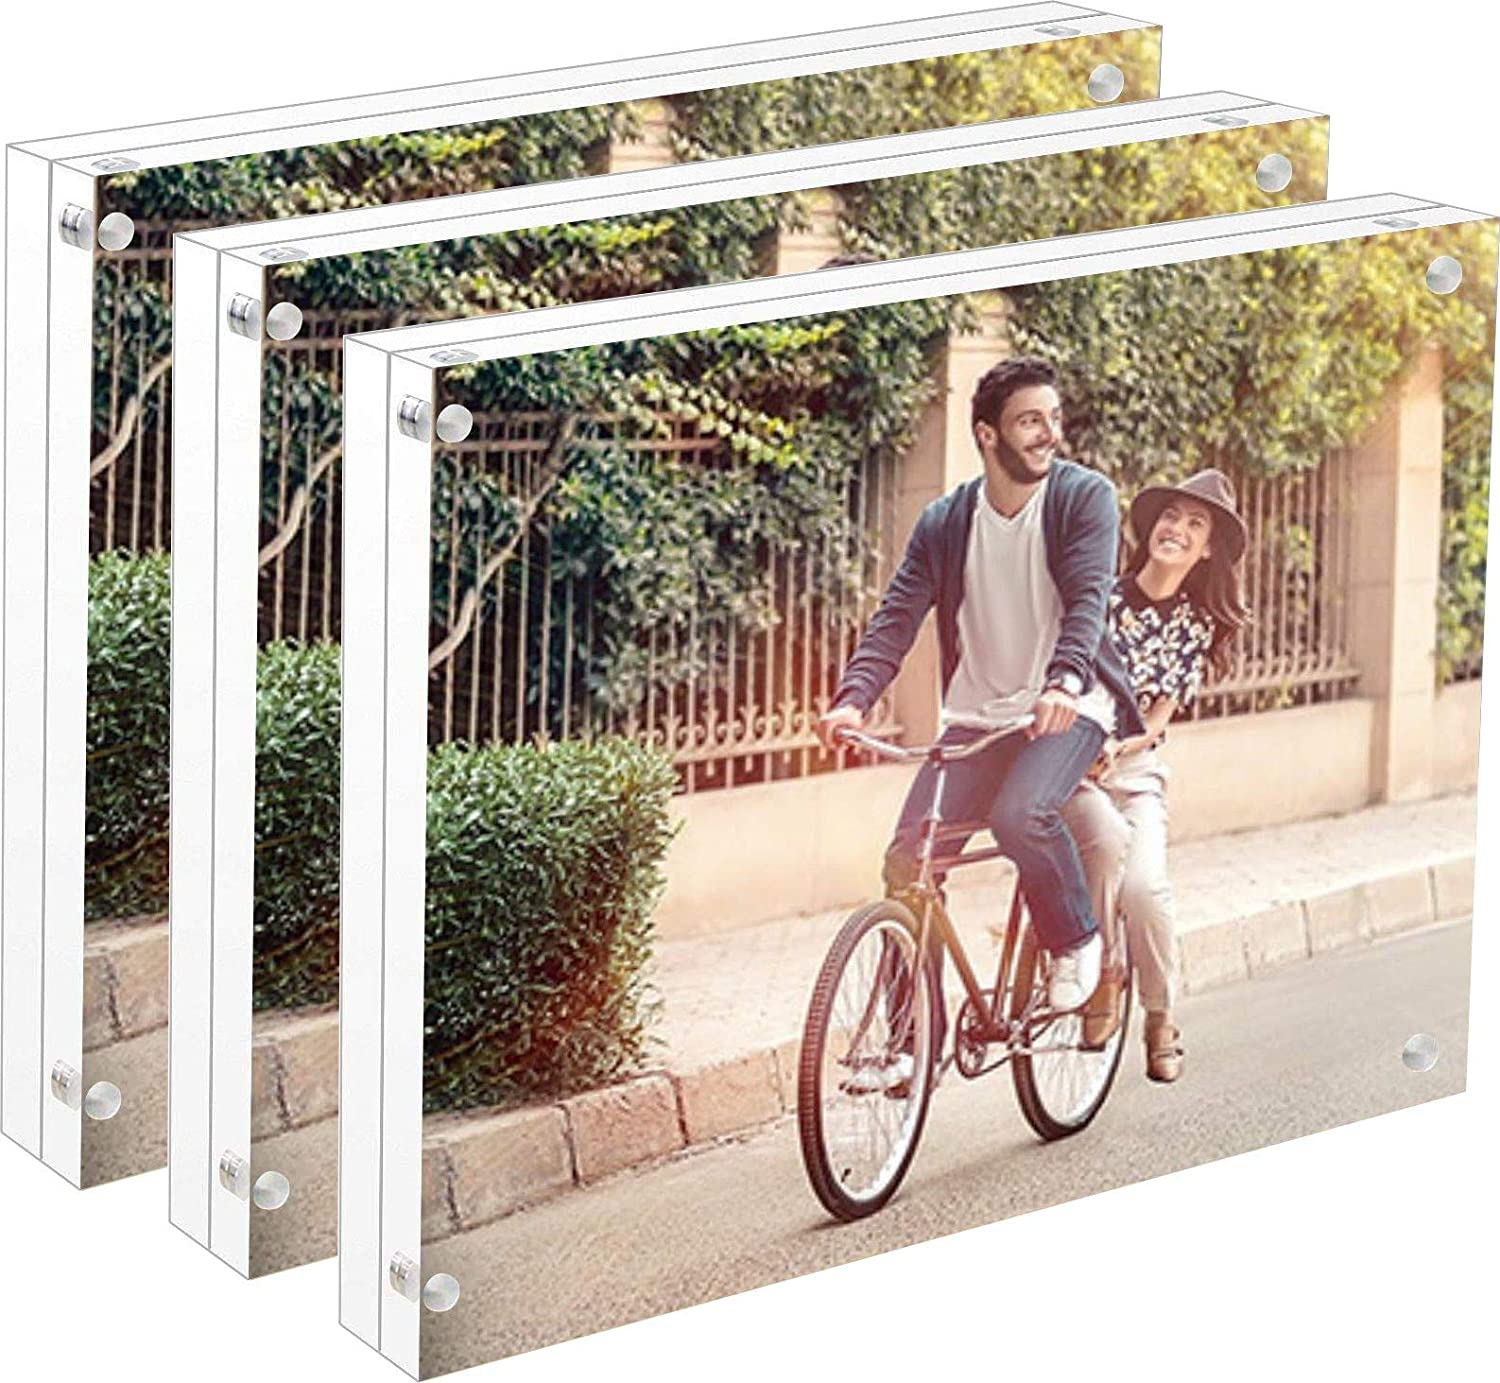 Cq acrylic 3pack 5x7 Acrylic Frame, Magnetic Picture Frames, Clear, 10 + 10MM Thickness Stand in Desk/Table